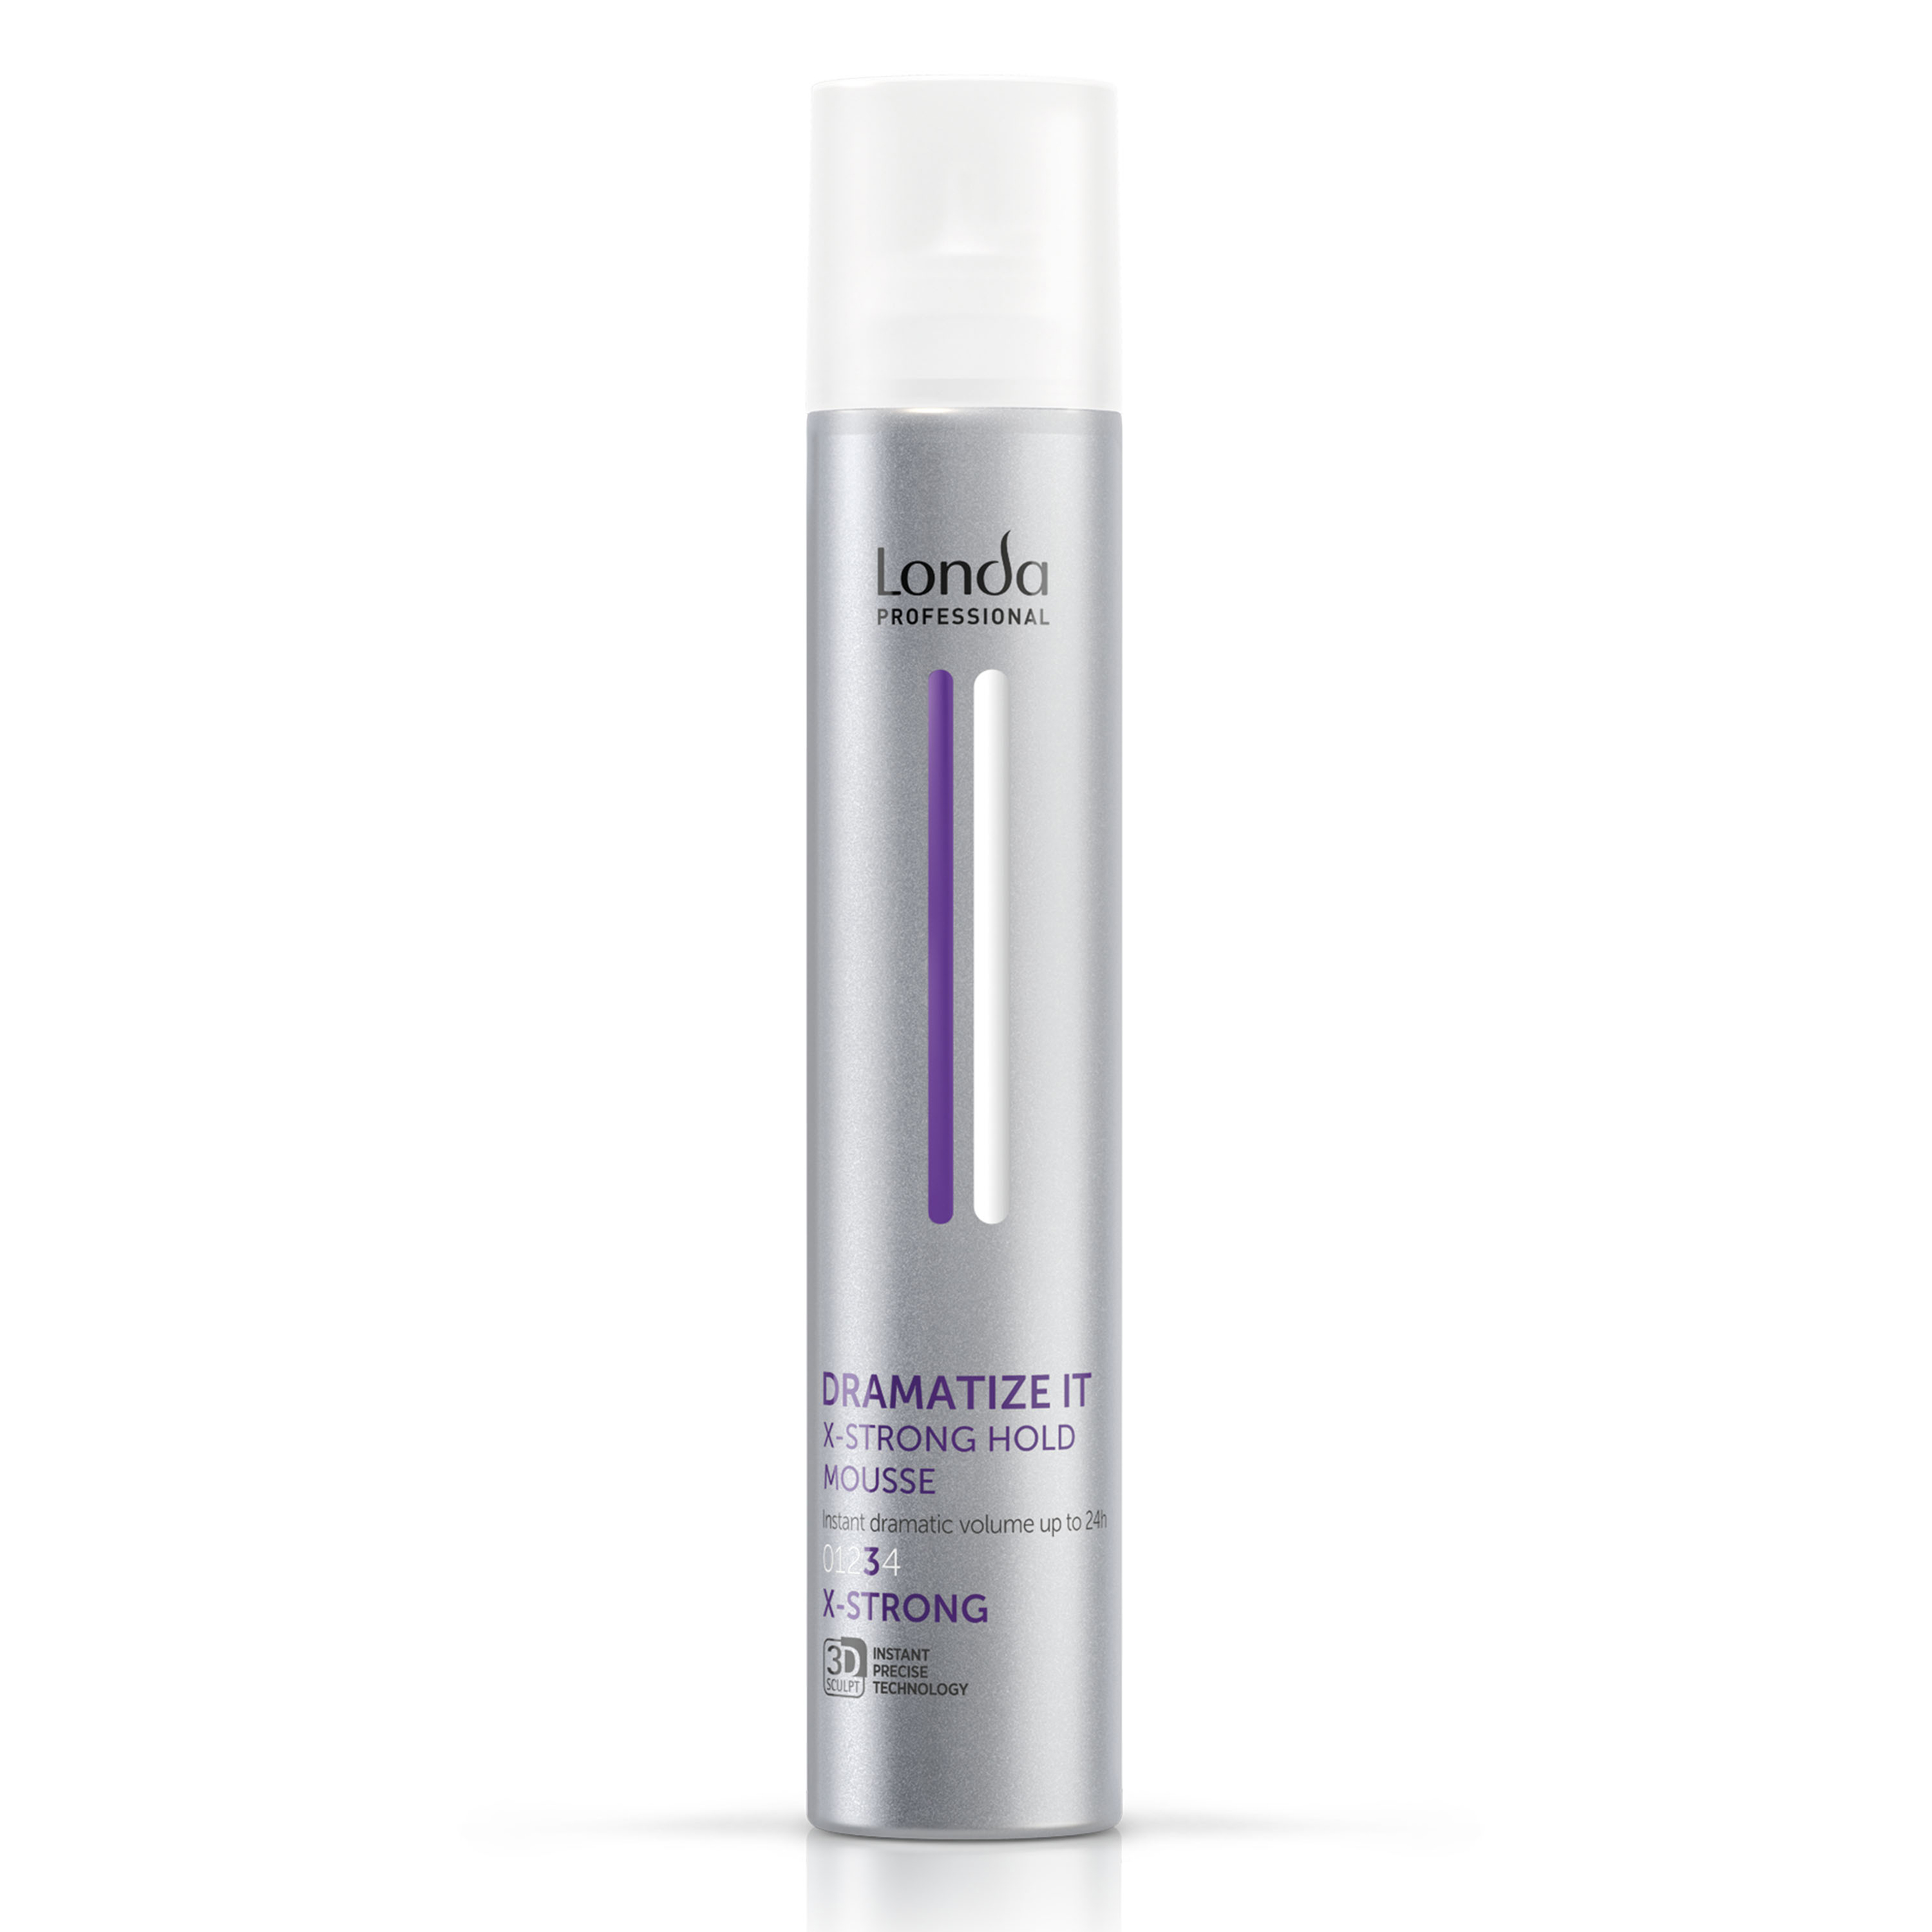 Londa Professional Dramatize It X-Strong Hold Mousse 500 ml